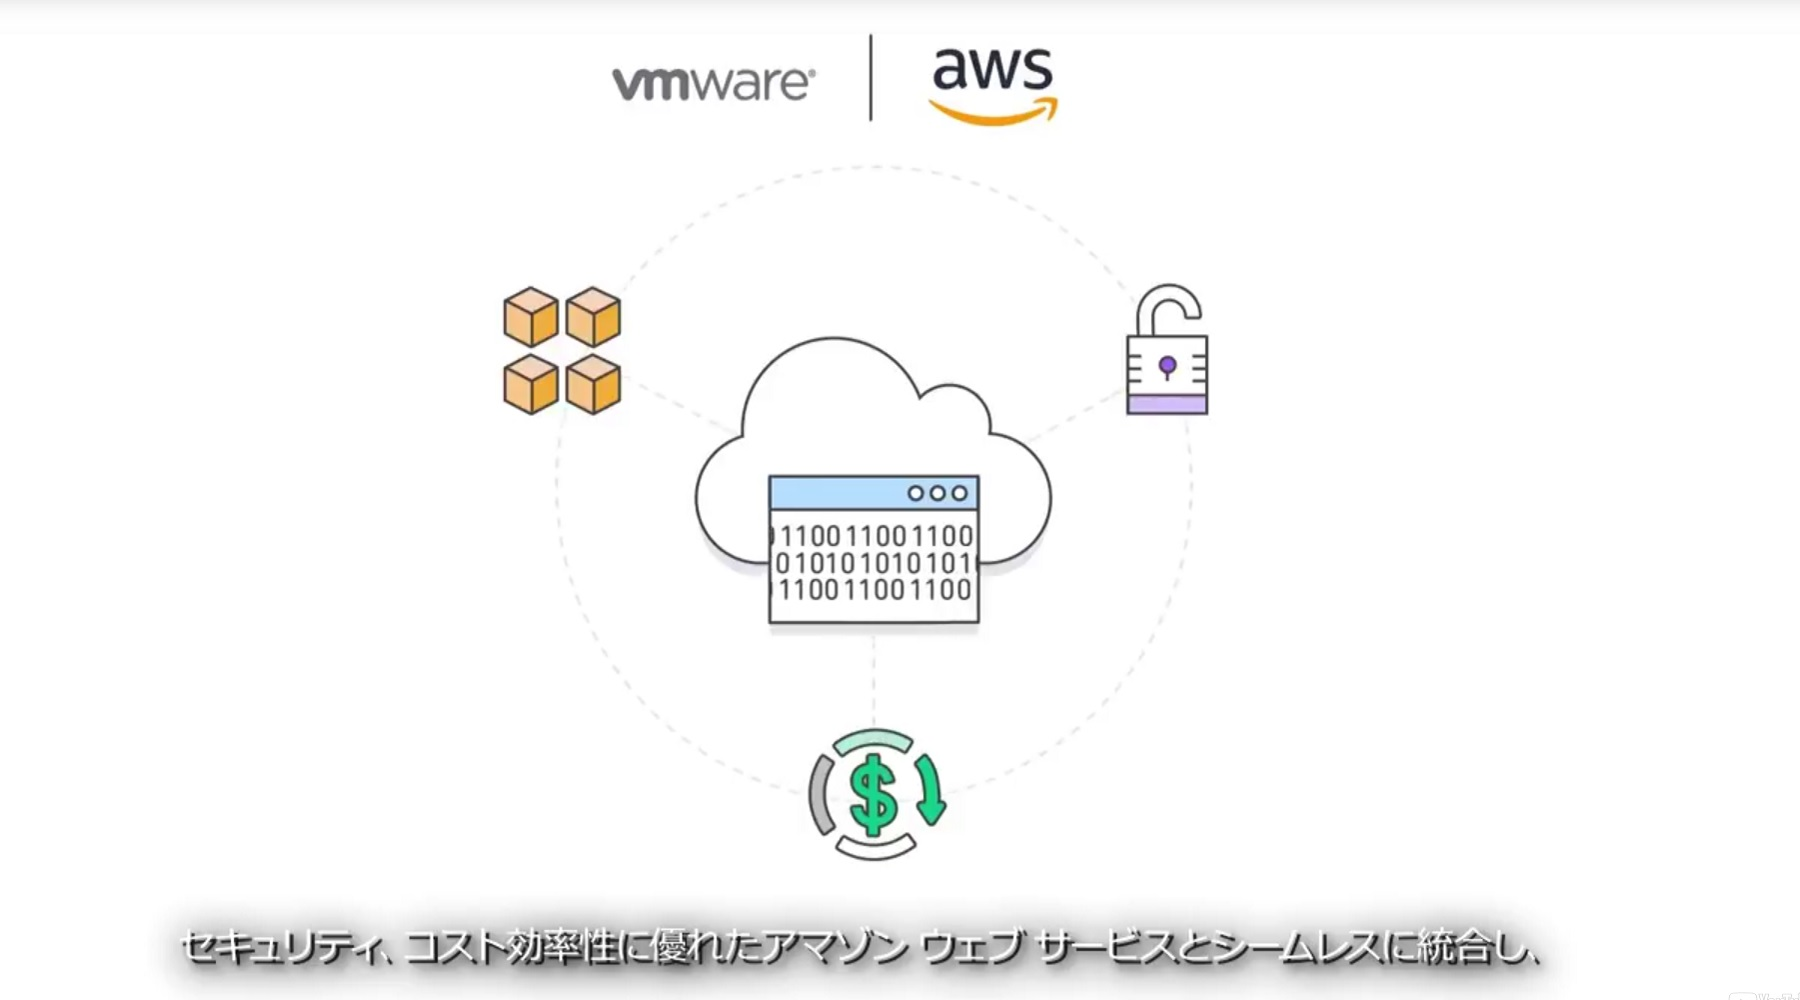 vmware on aws video02